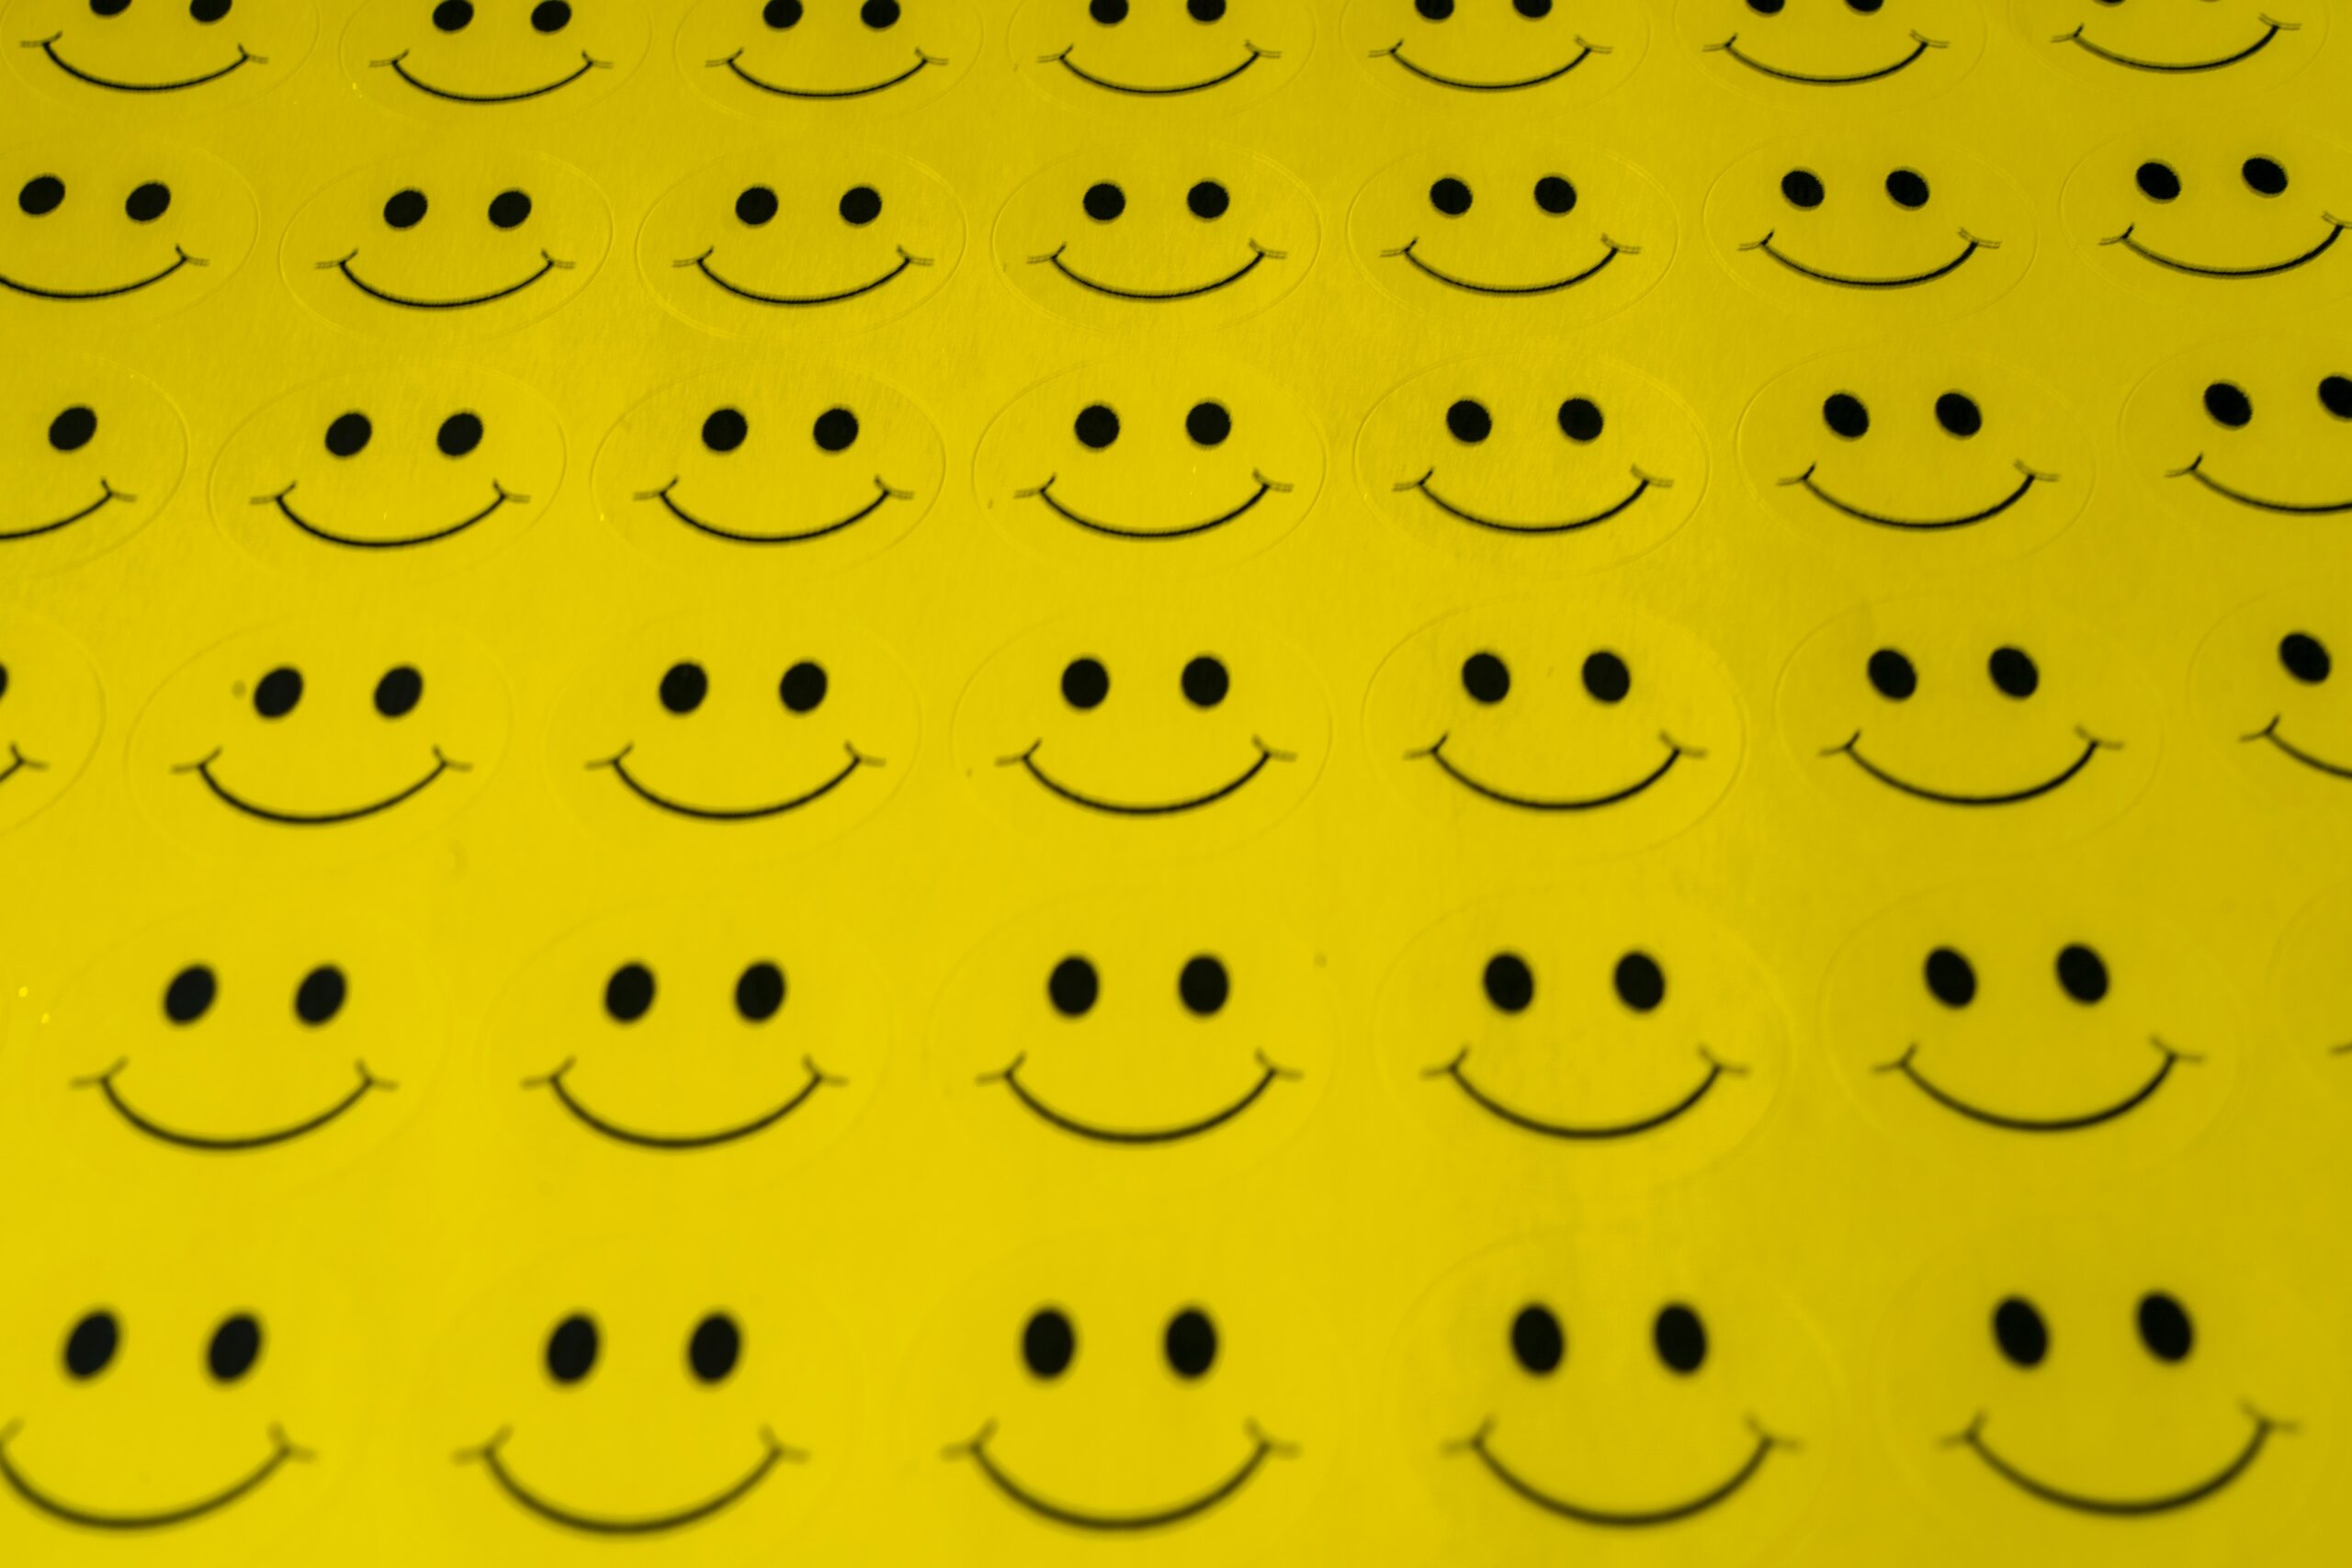 5 reasons why it's so important to do what makes you happy